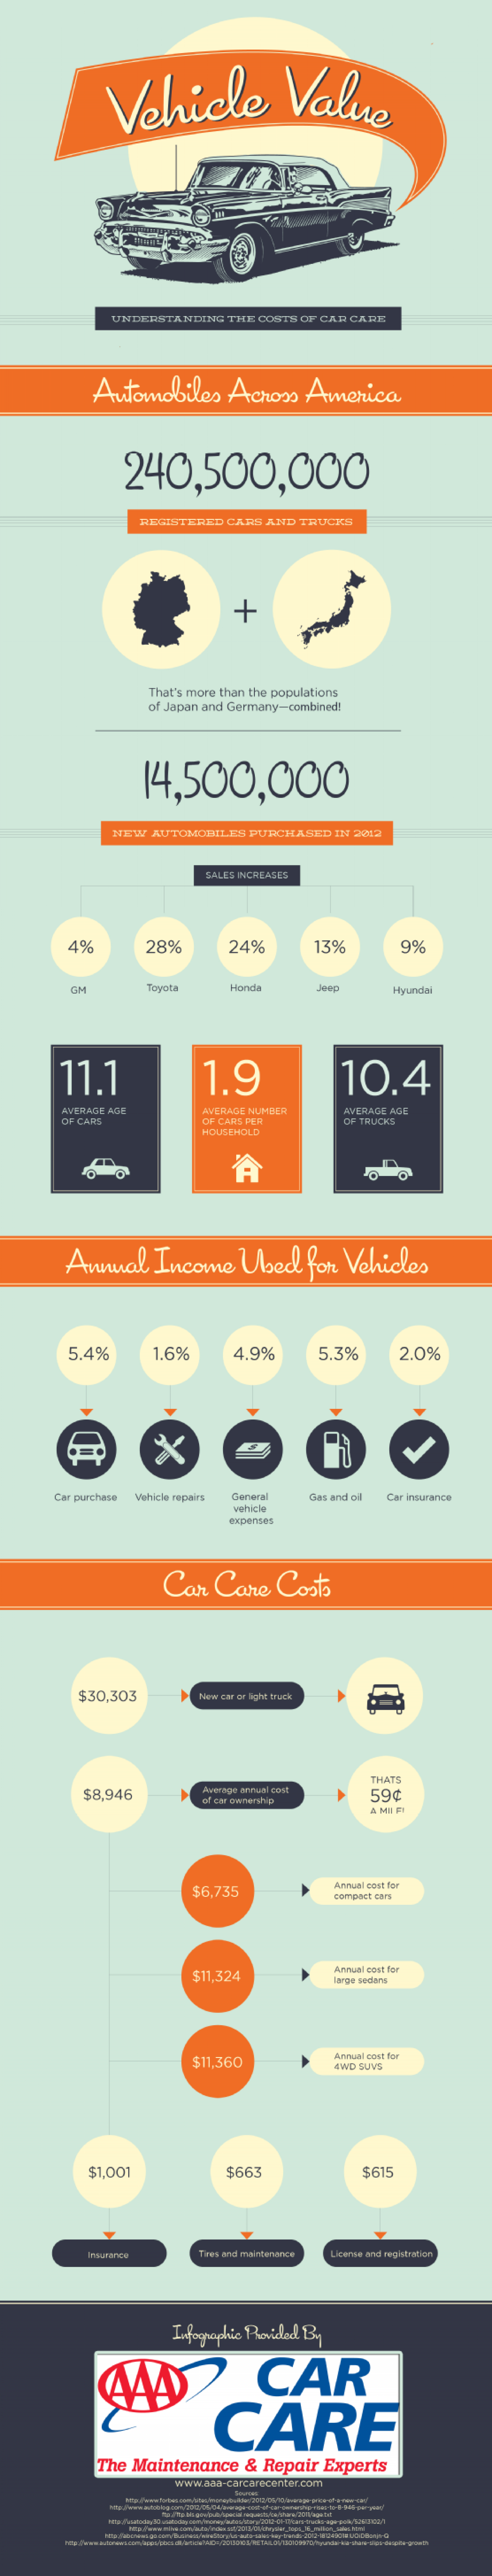 Vehicle Value: Understanding the Costs of Car Care  Infographic